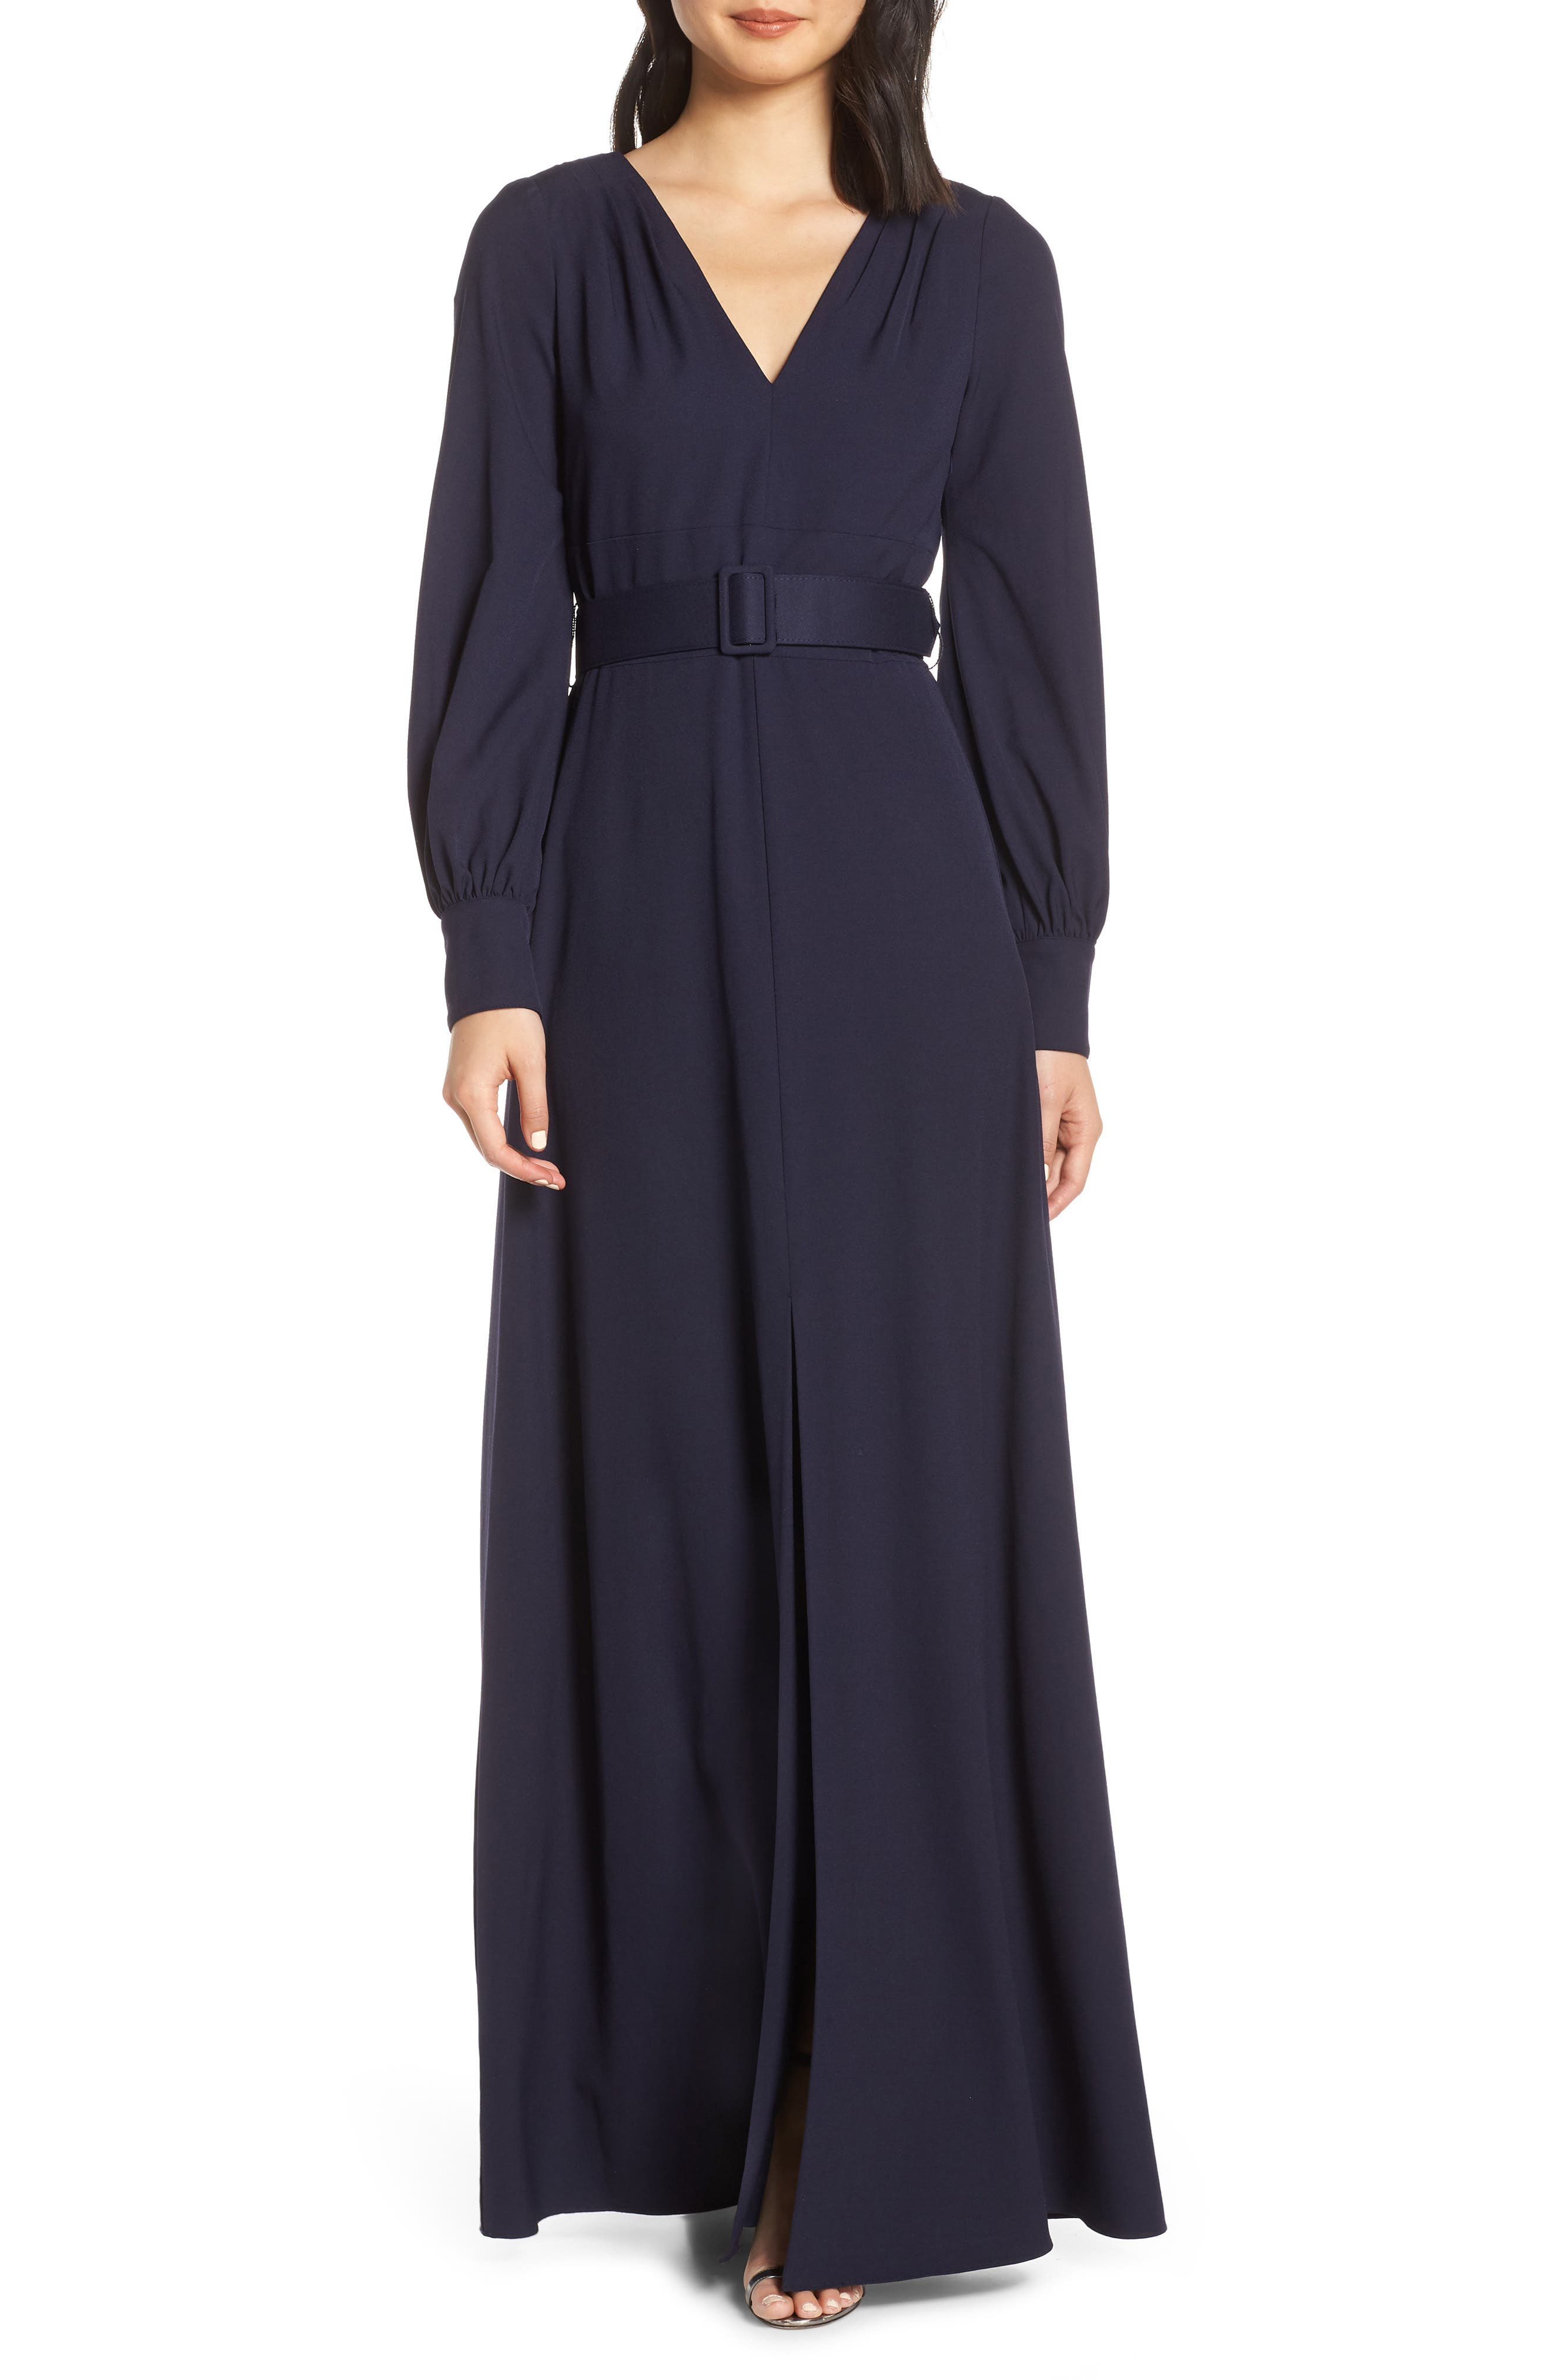 ELIZA J Long Sleeve Belted Gown, Main, color, NAVY